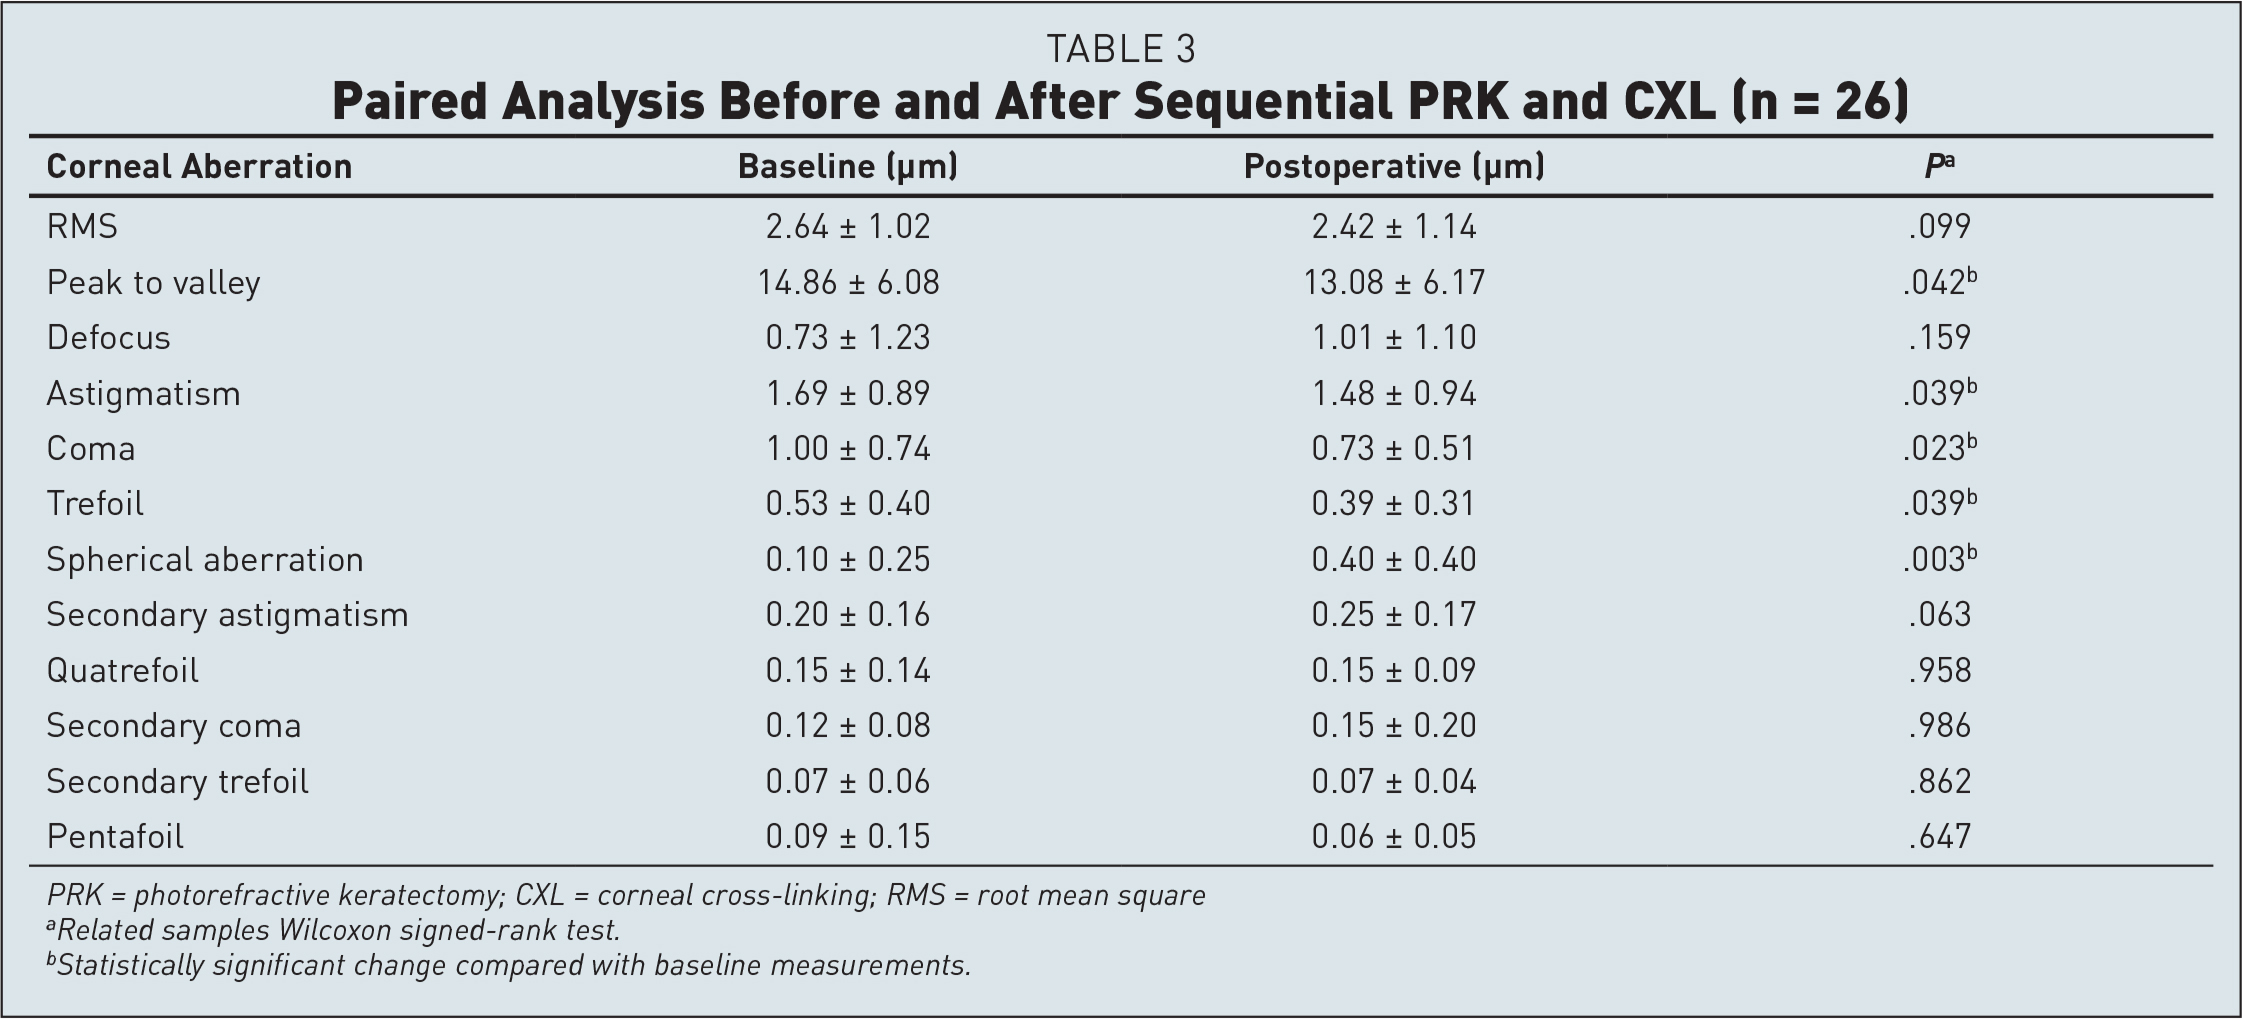 Paired Analysis Before and After Sequential PRK and CXL (n = 26)